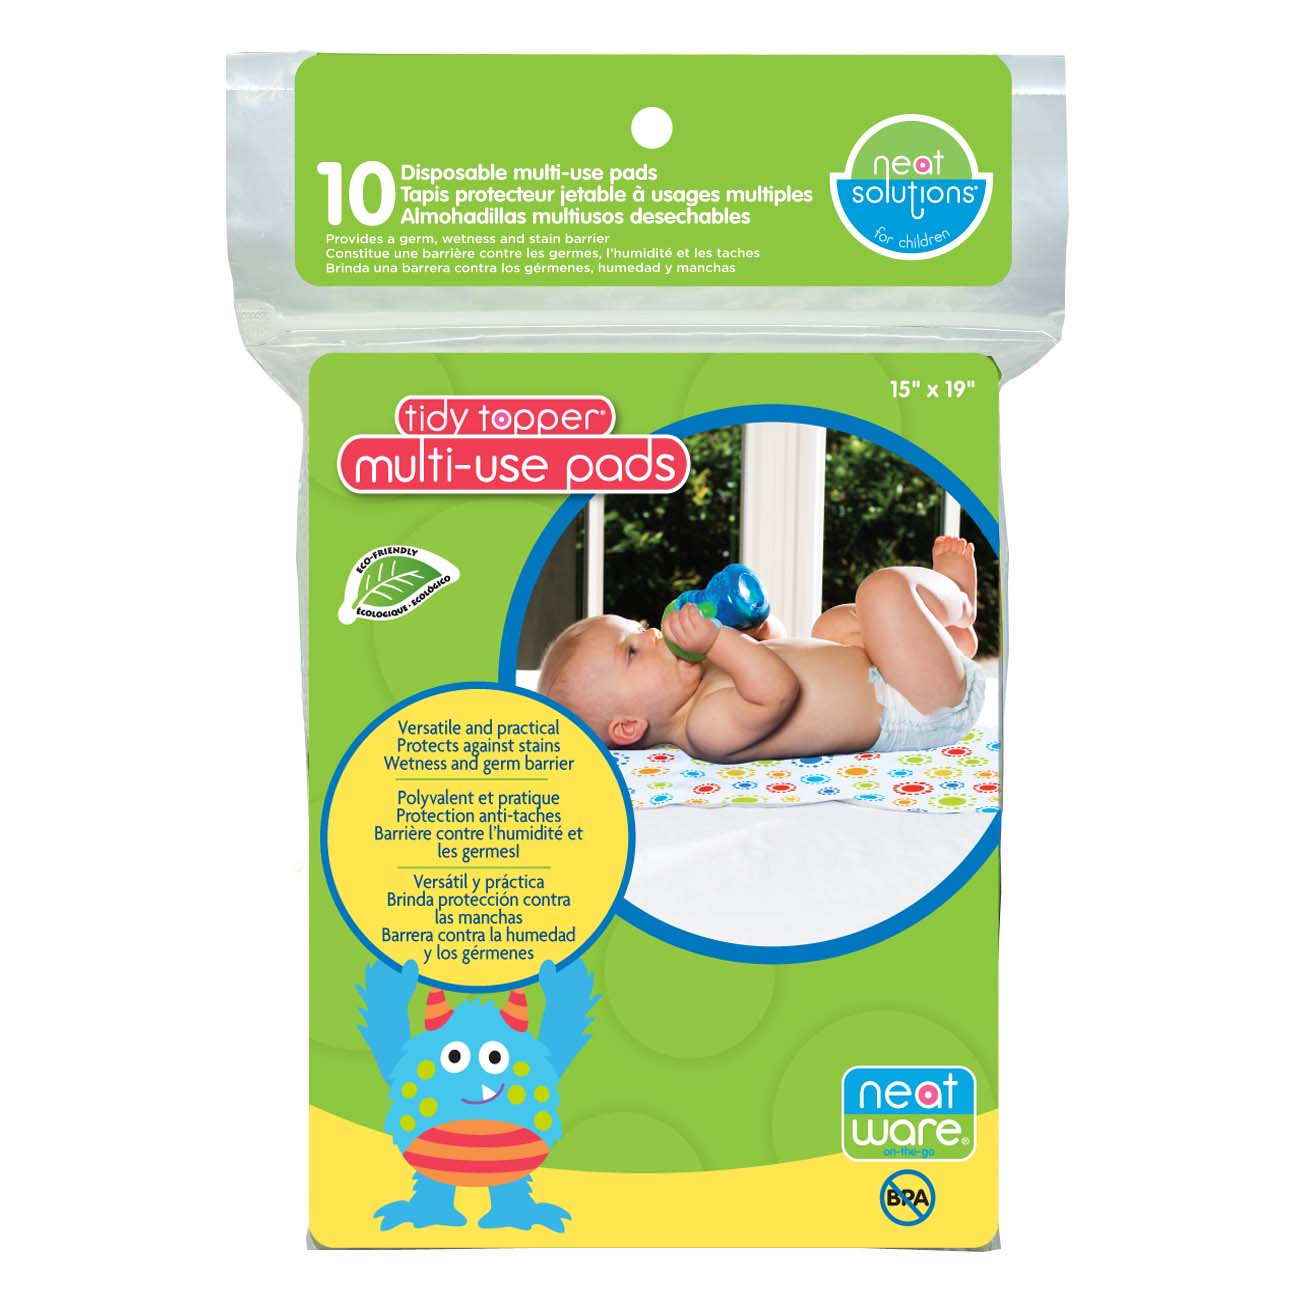 Neat Solutions Neatware Multi-Use Pads, 10 Ct